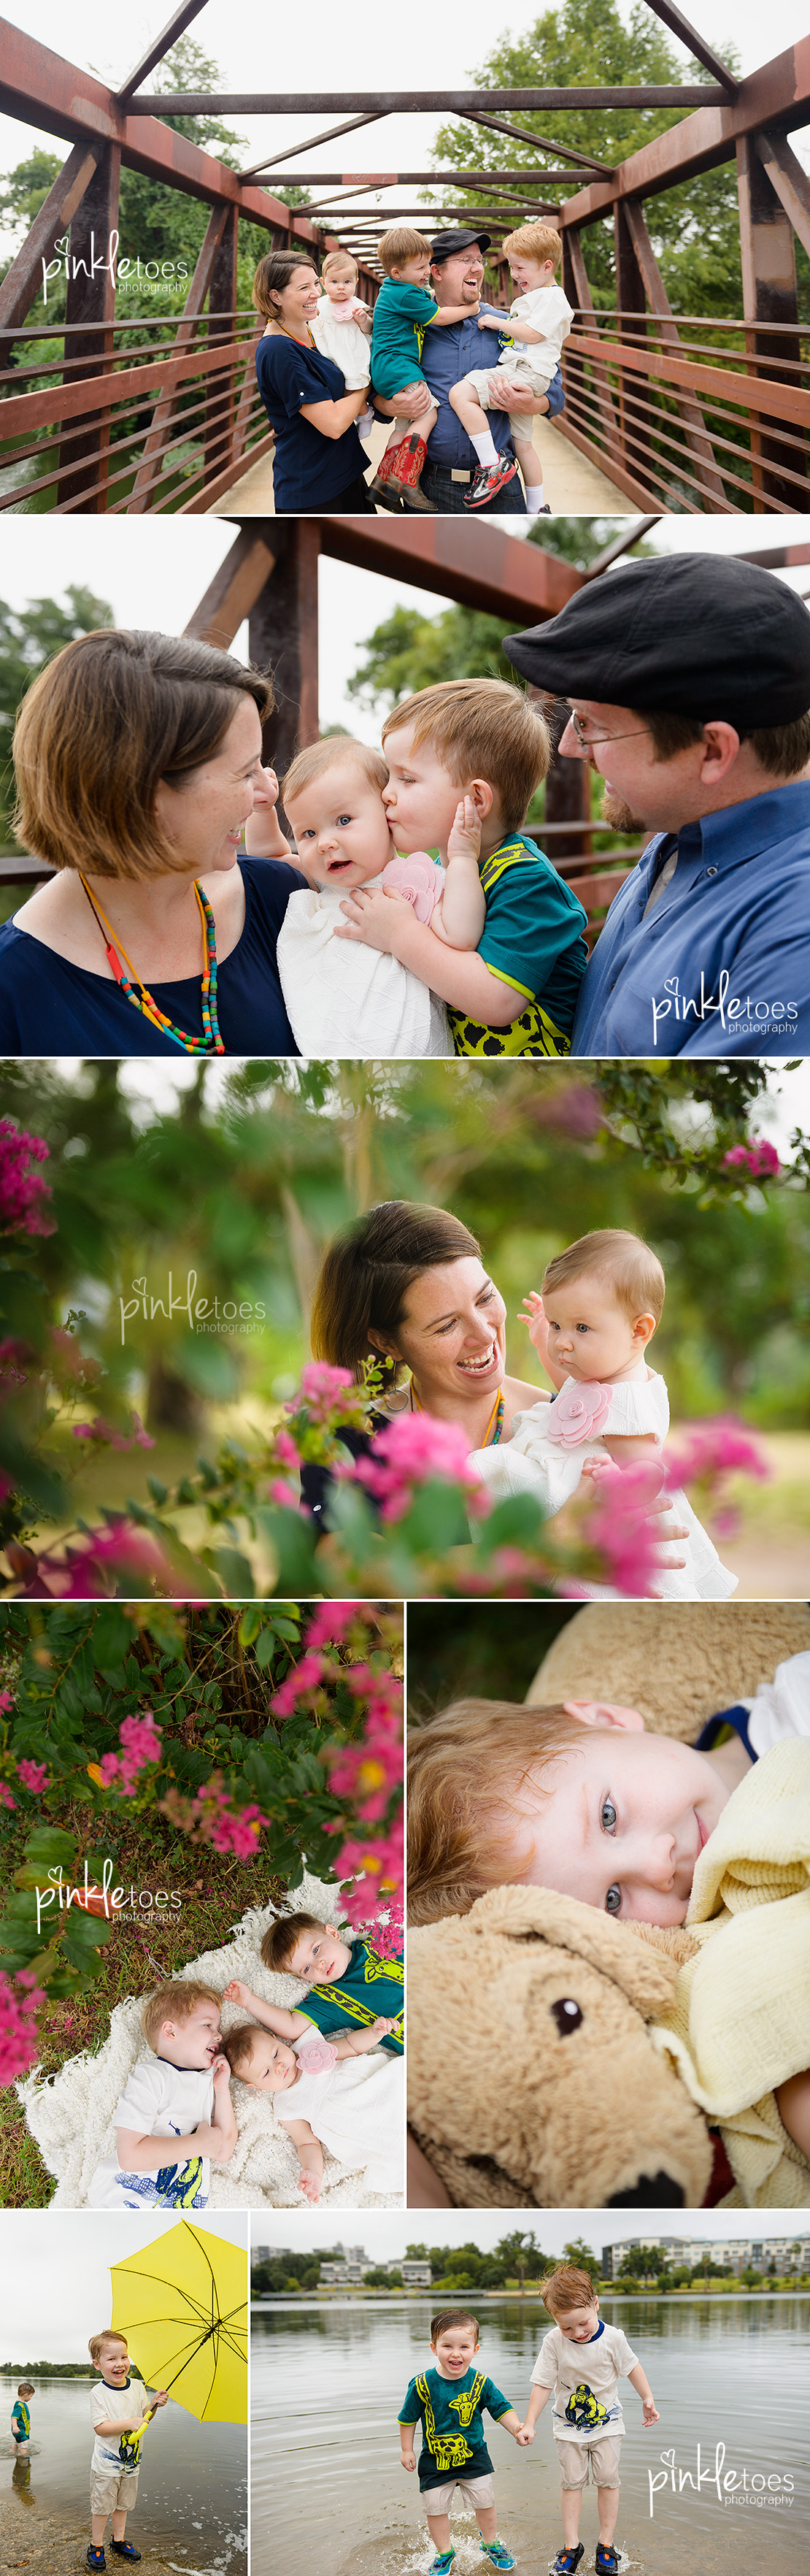 ac-pinkle-toes-austin-family-photography-lady-bird-lake